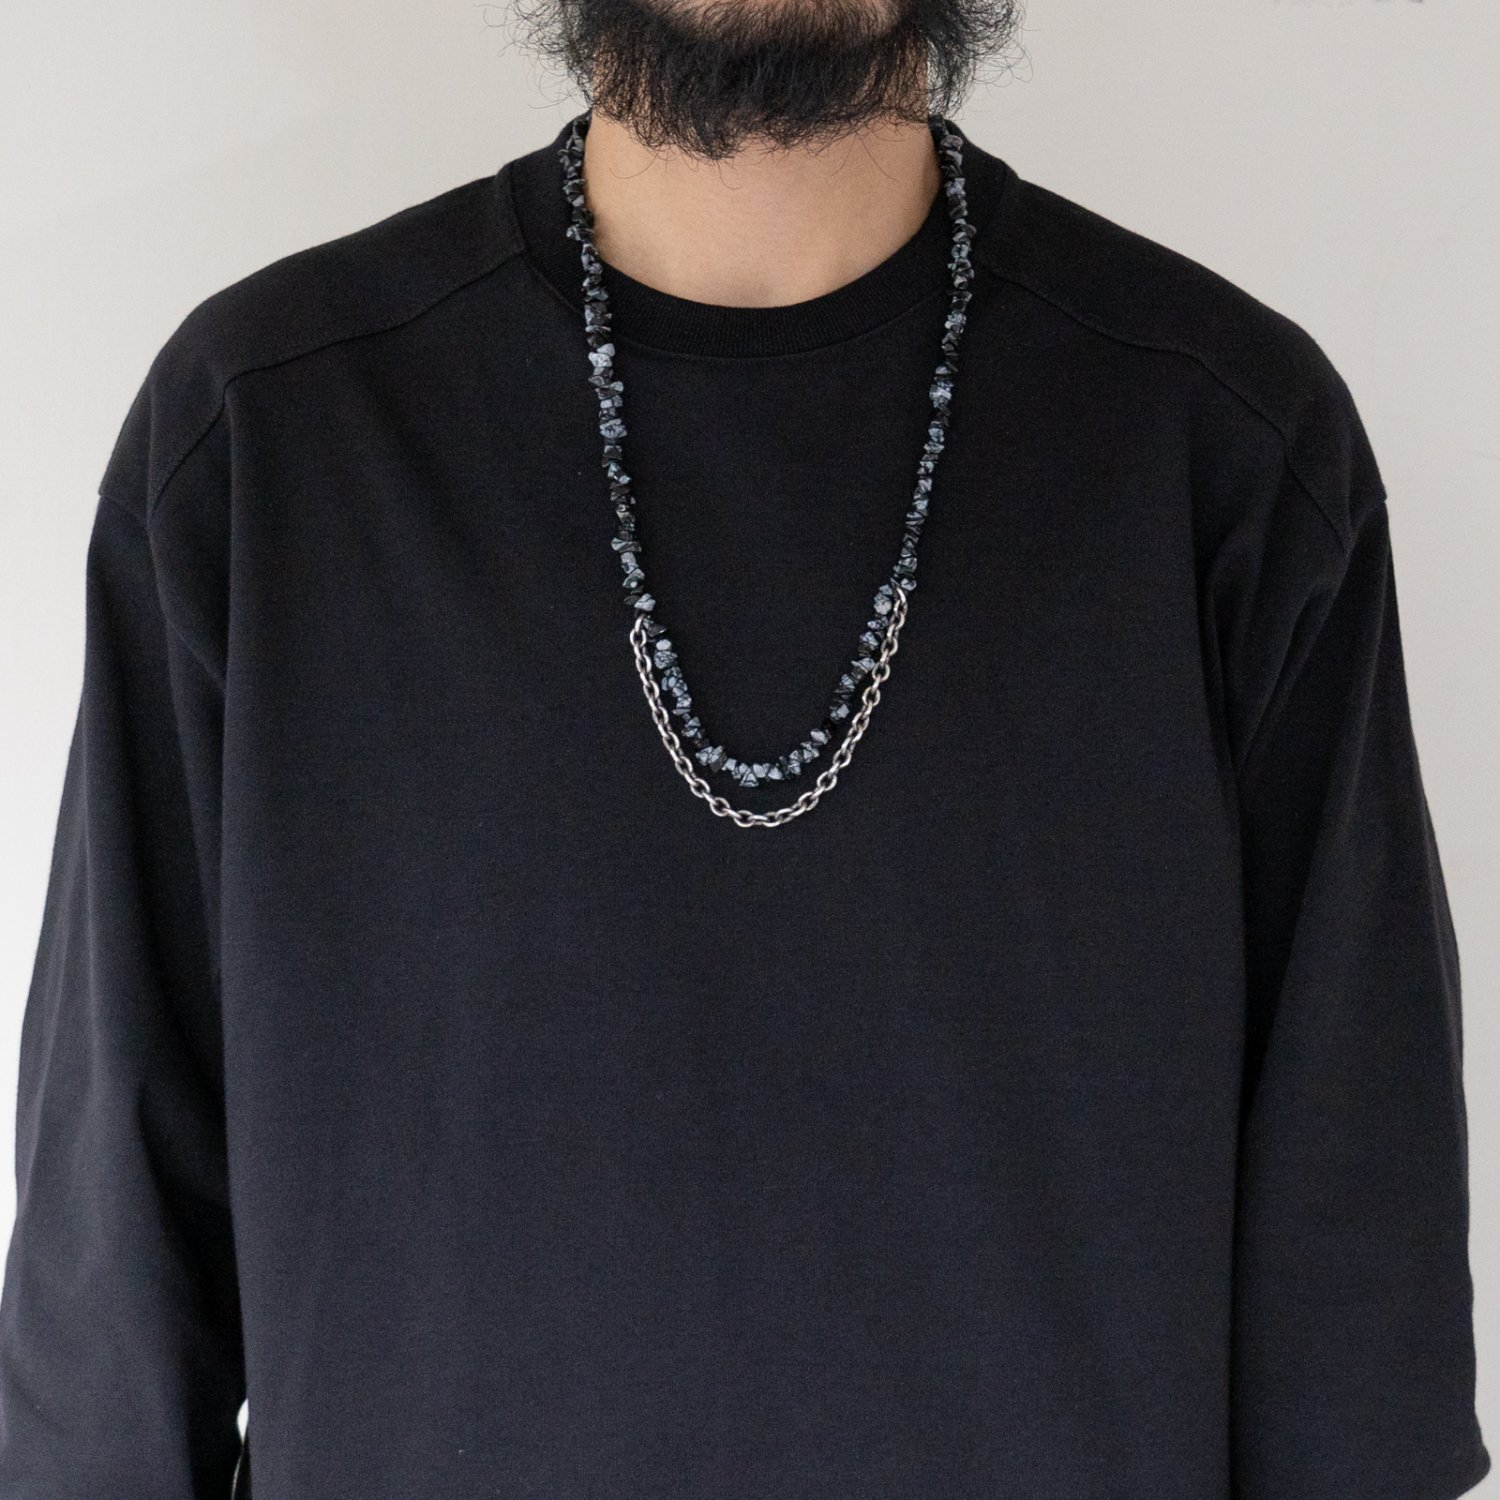 hobo * STONE NECKLACE with 925 SILVER CHAIN(3色展開)